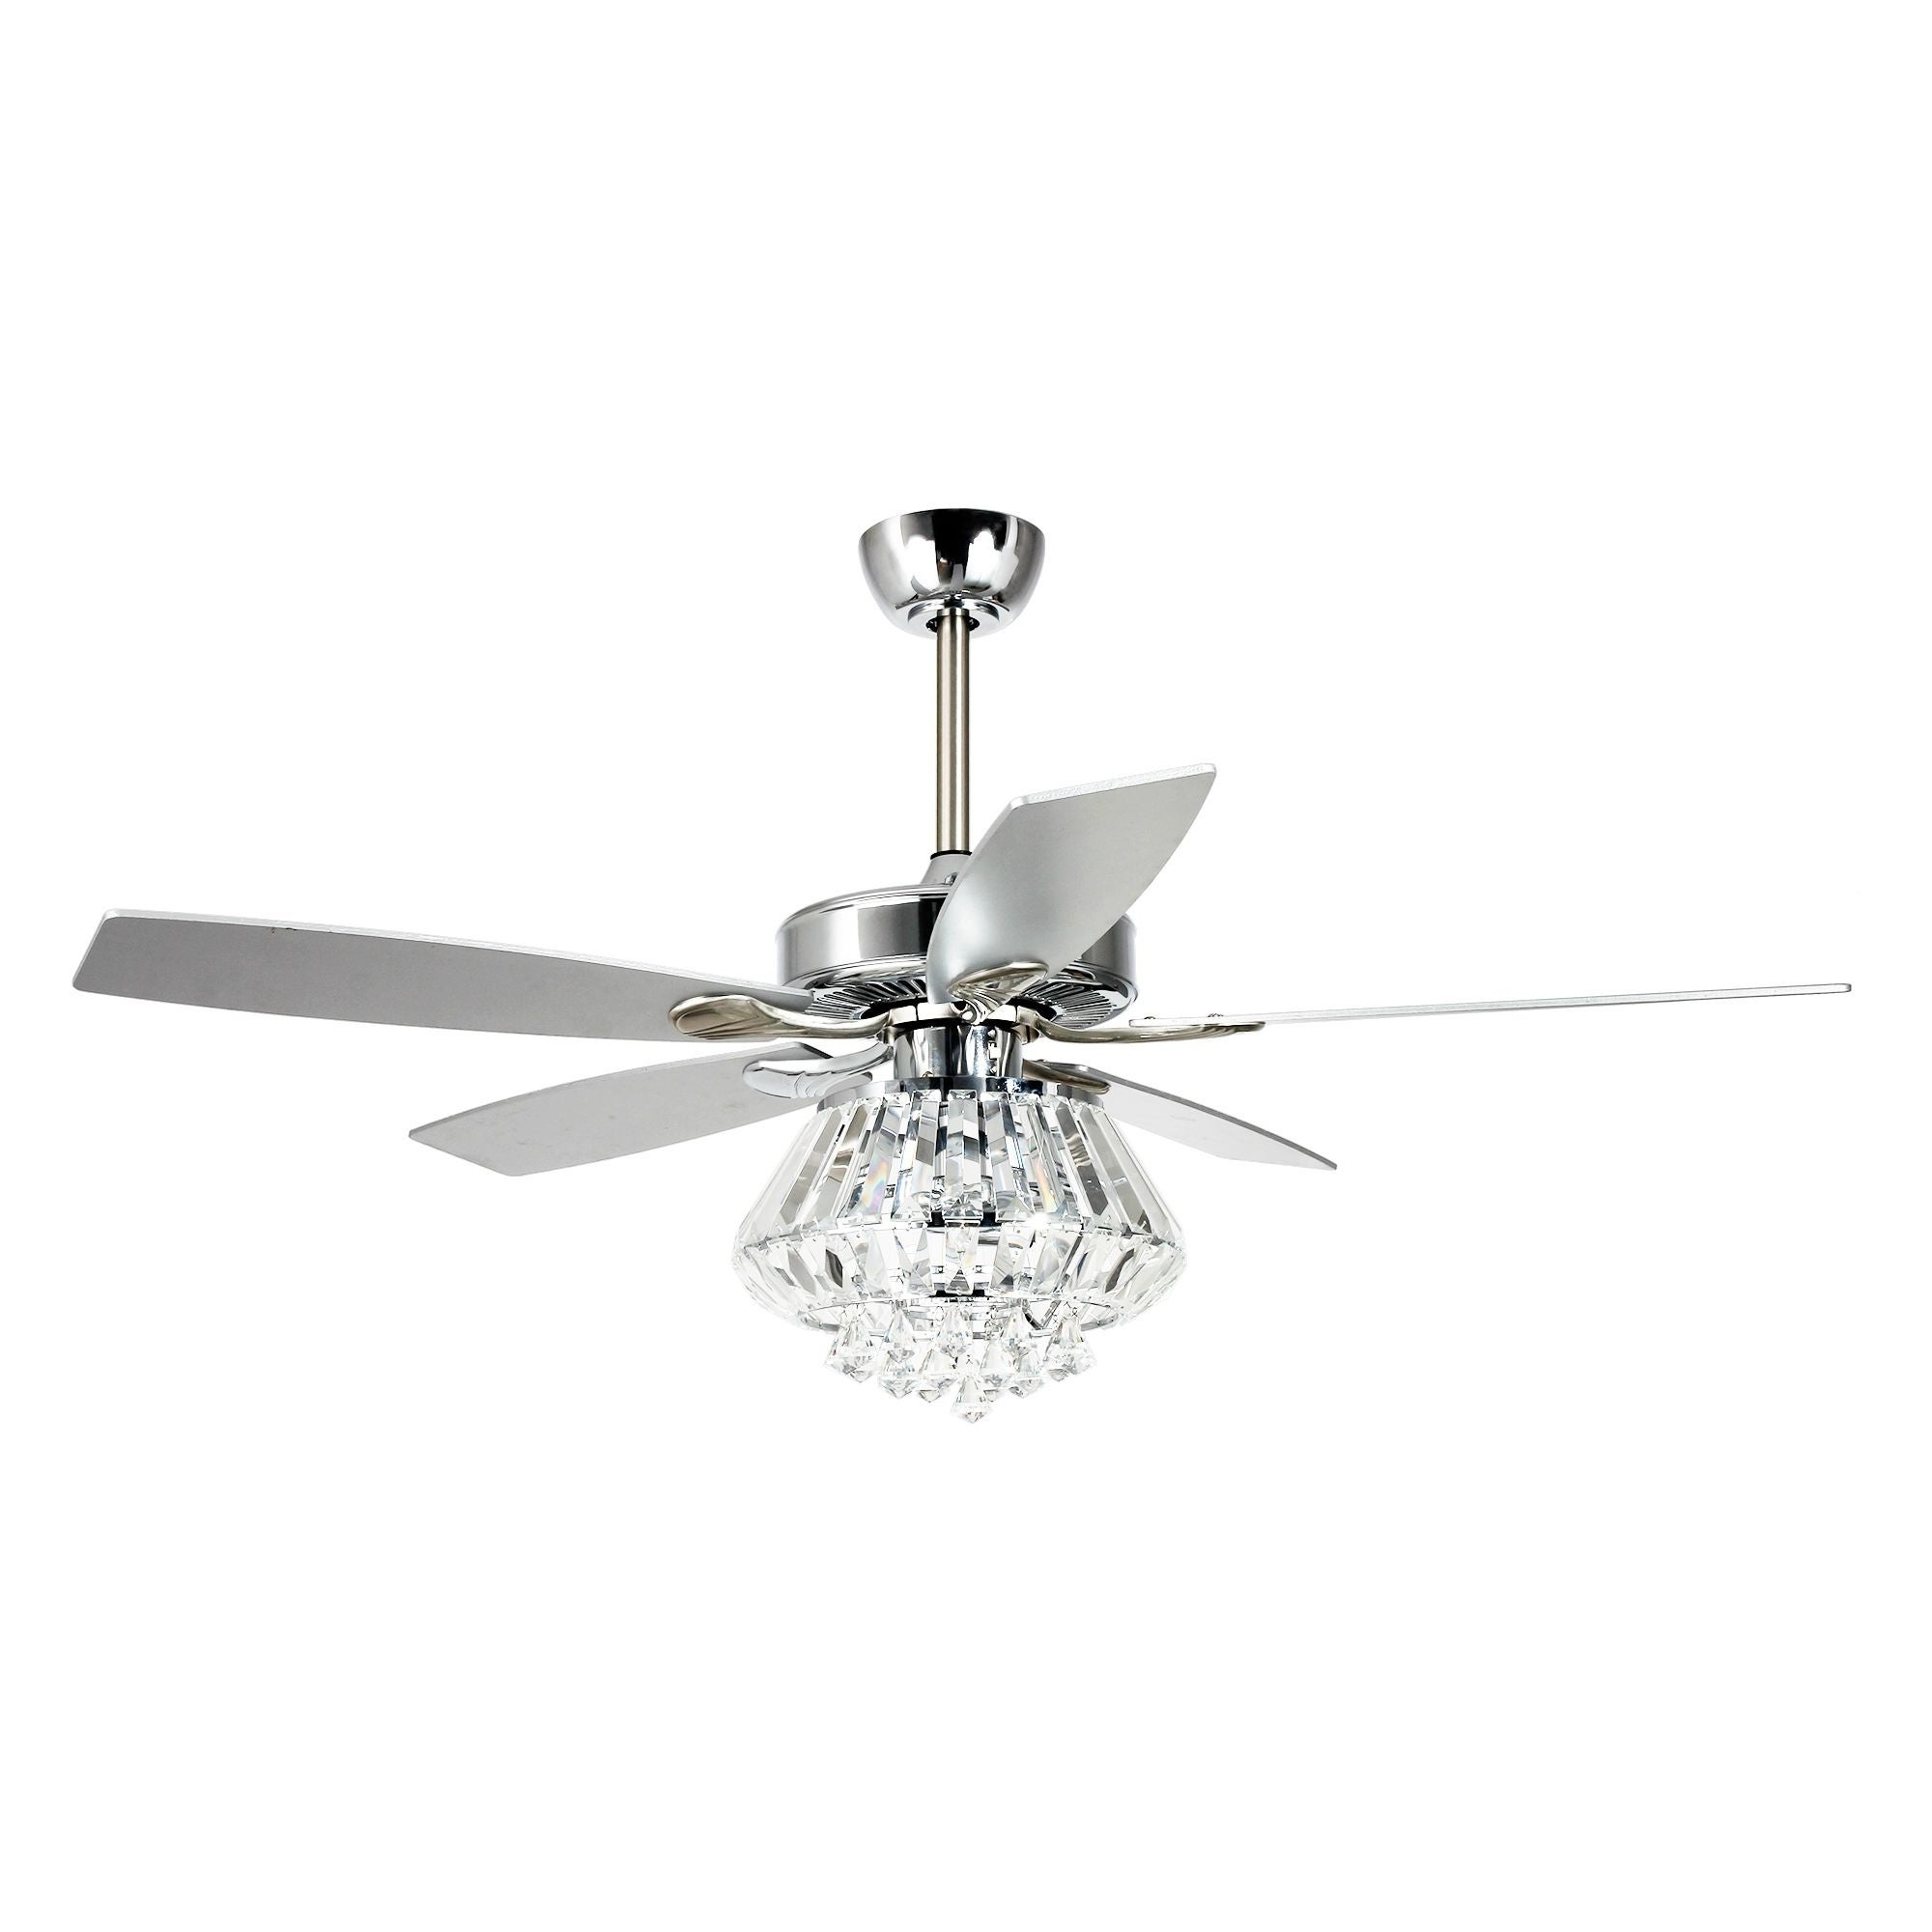 Modern 52 Inch Chrome 5 Blade Crystal Ceiling Fan With Remote For Well Liked 5 Blade Ceiling Fans With Remote (View 15 of 20)